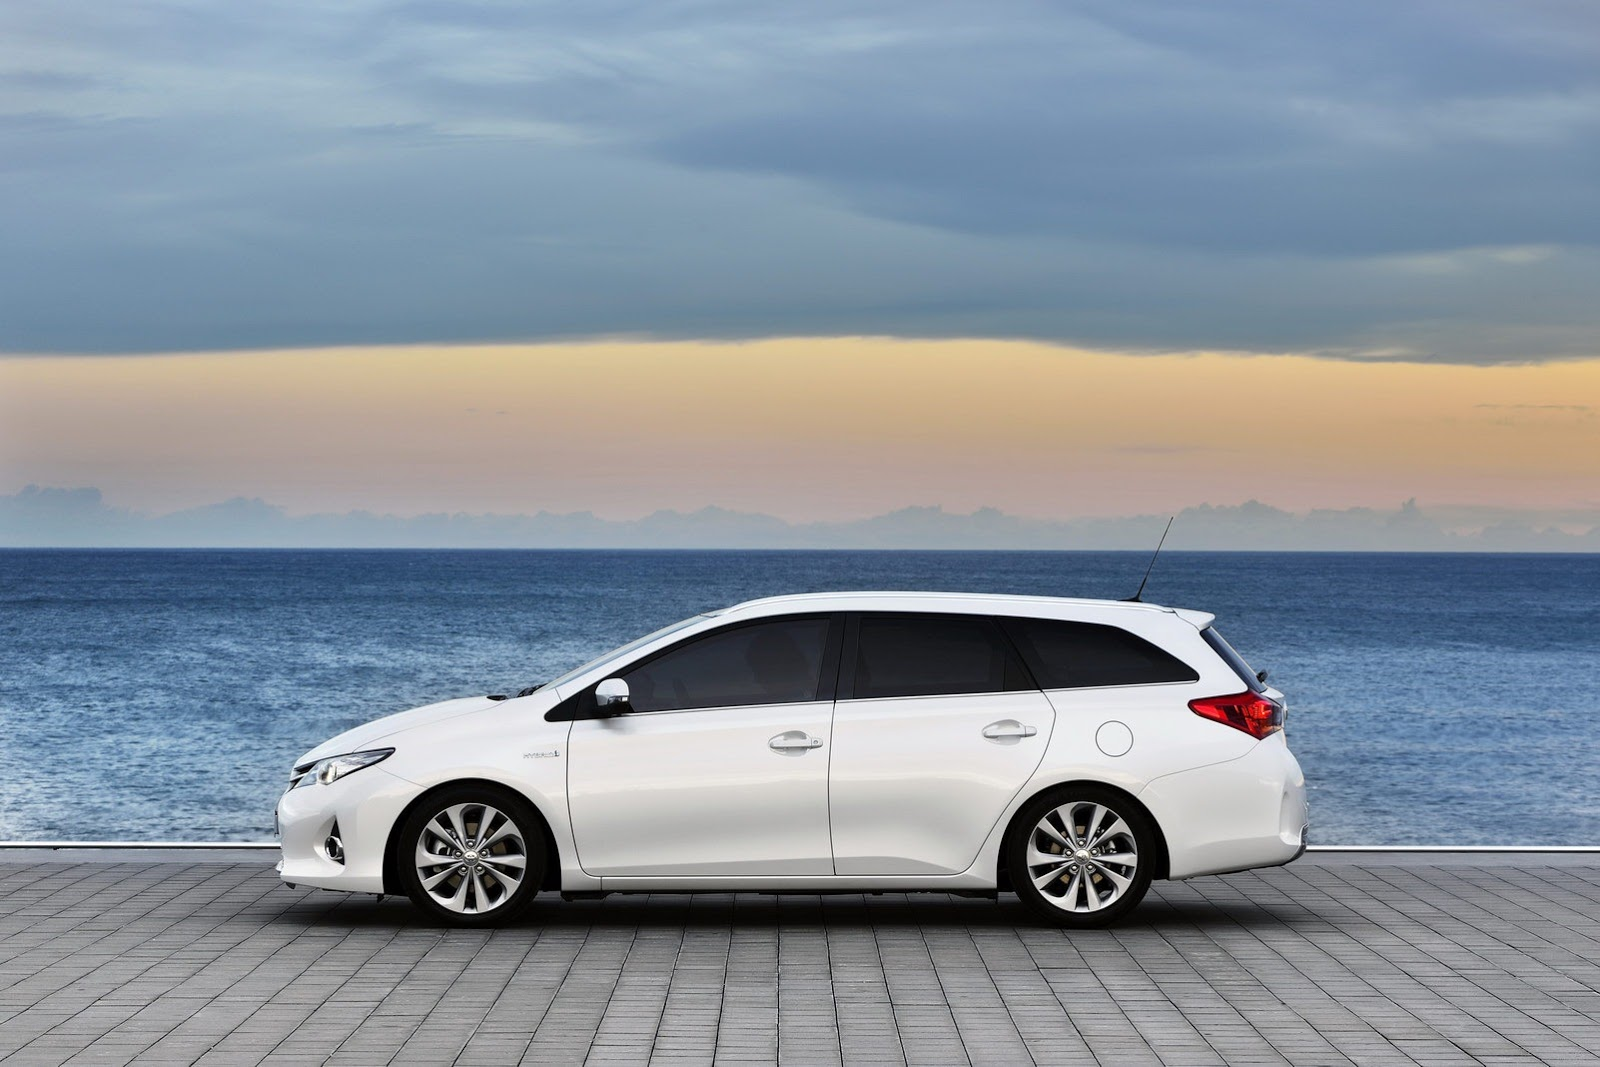 Thevampireacademy  New Toyota Auris Touring Sports Range Priced In The Uk